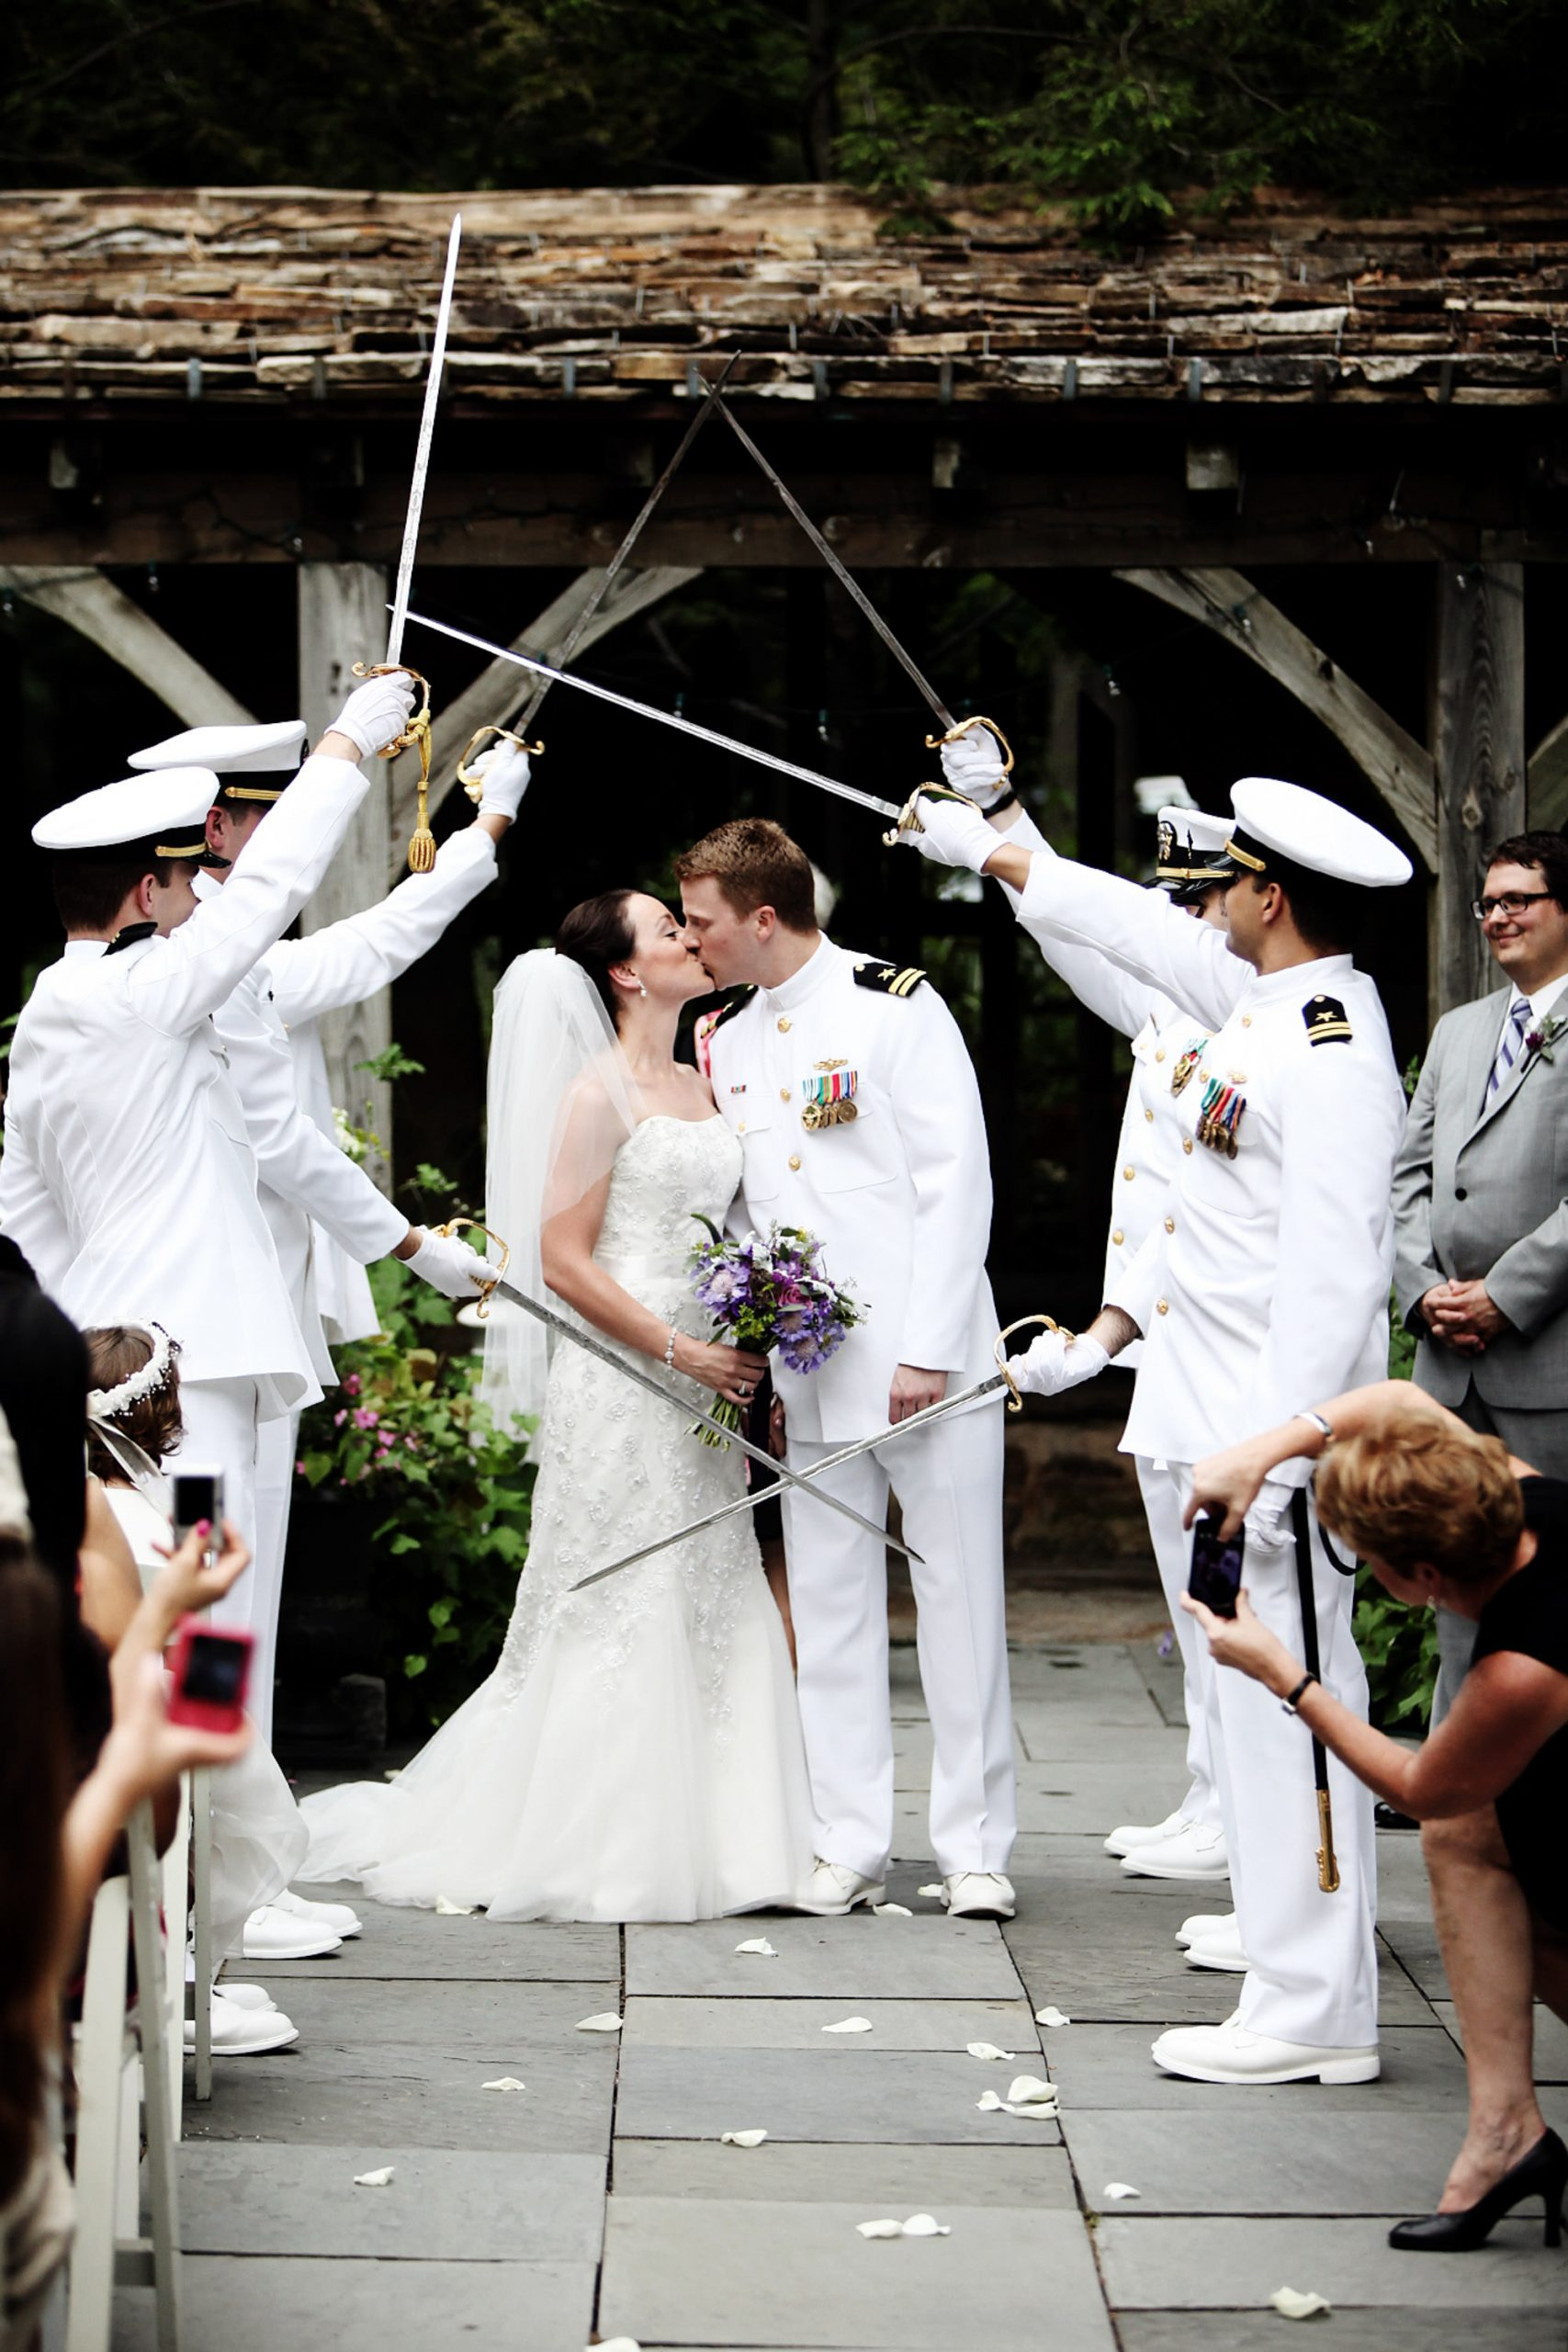 Cloisters Castle Wedding  I  The bride and groom kiss under a sword arch  during the ceremony in Lutherville, MD.